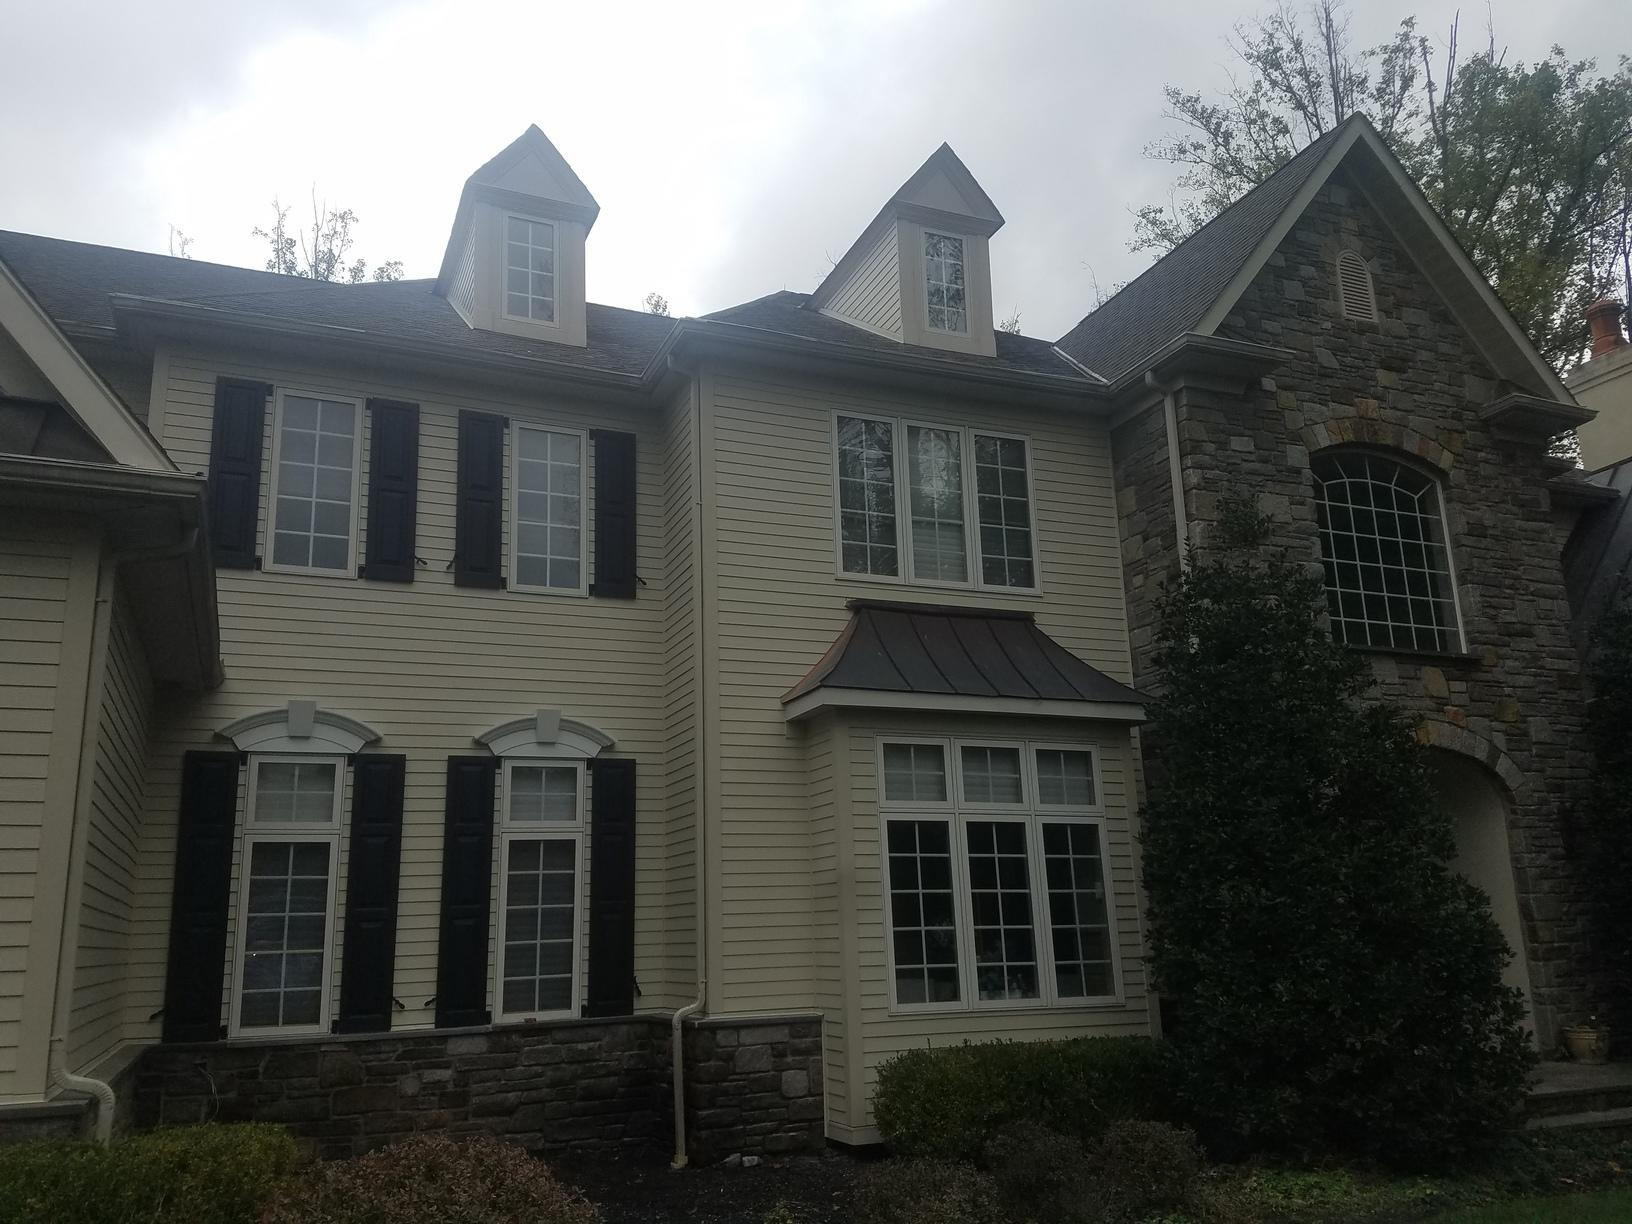 James Hardie Fiber Cement Planks and ProVia Stone Siding Install in Ambler, PA